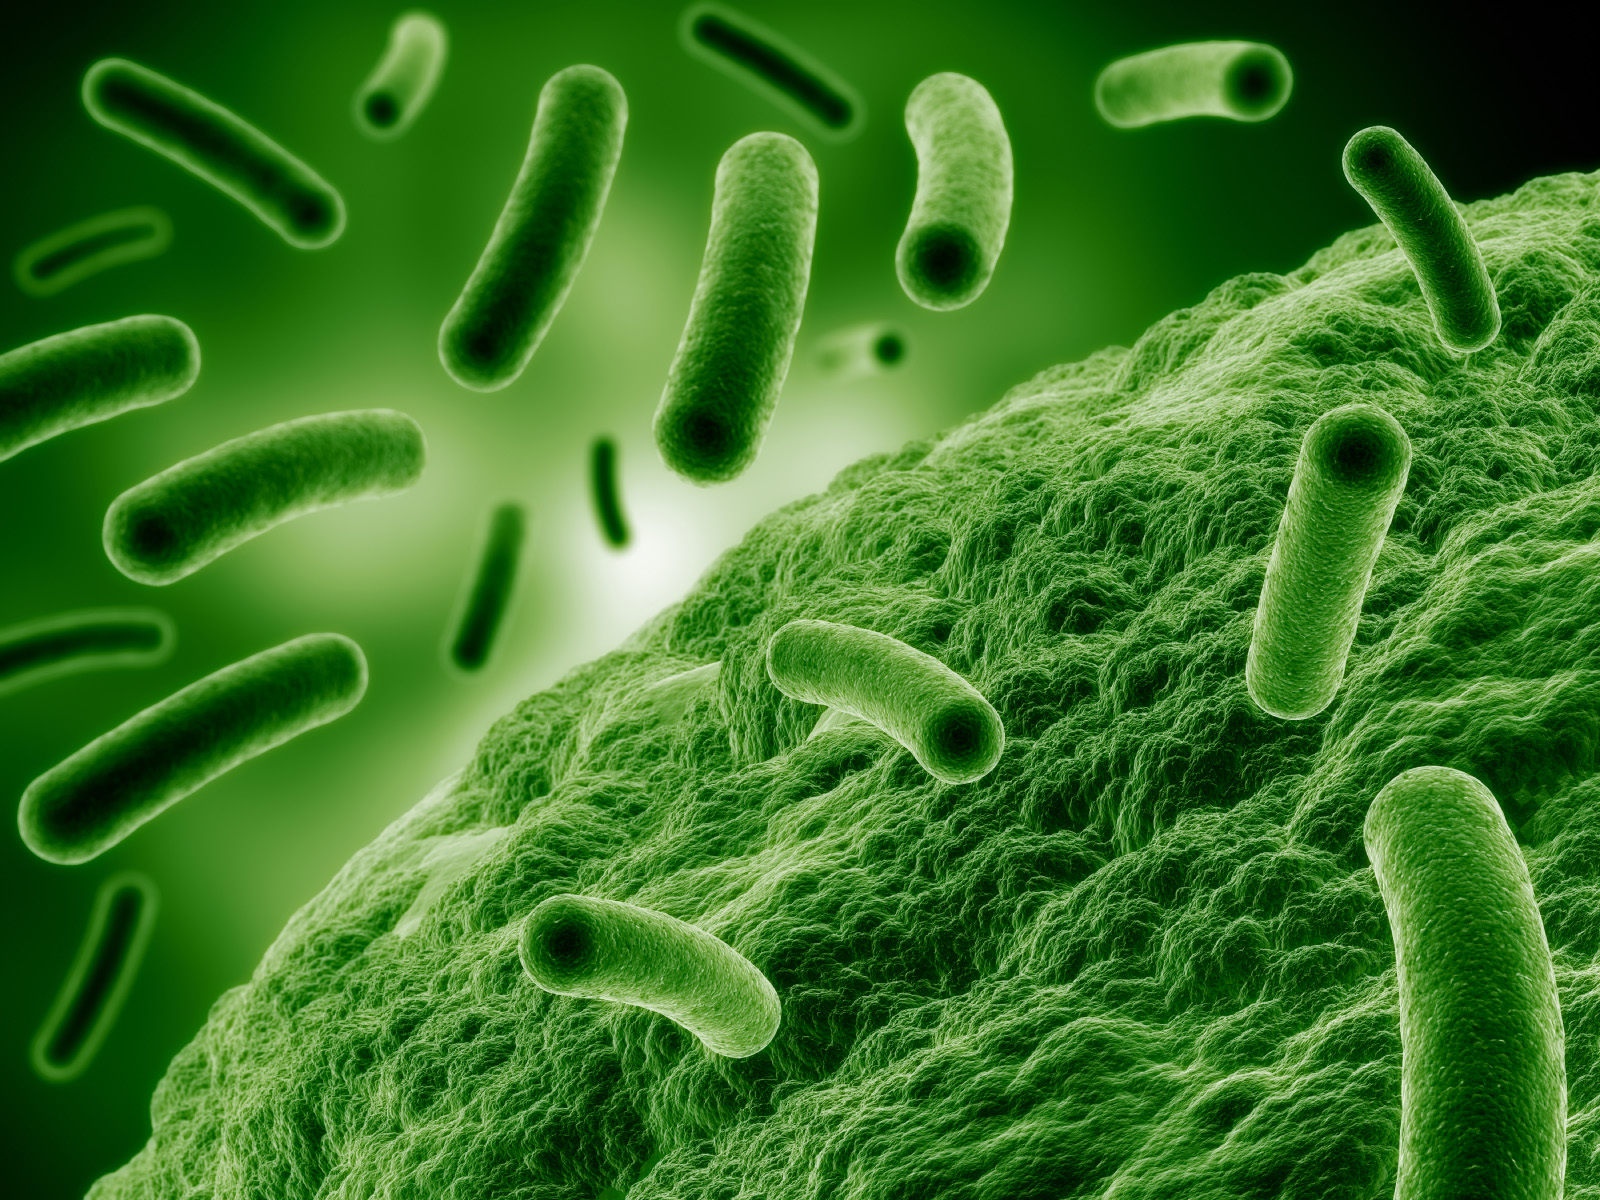 Antimicrobial Resistance: A Global Concern